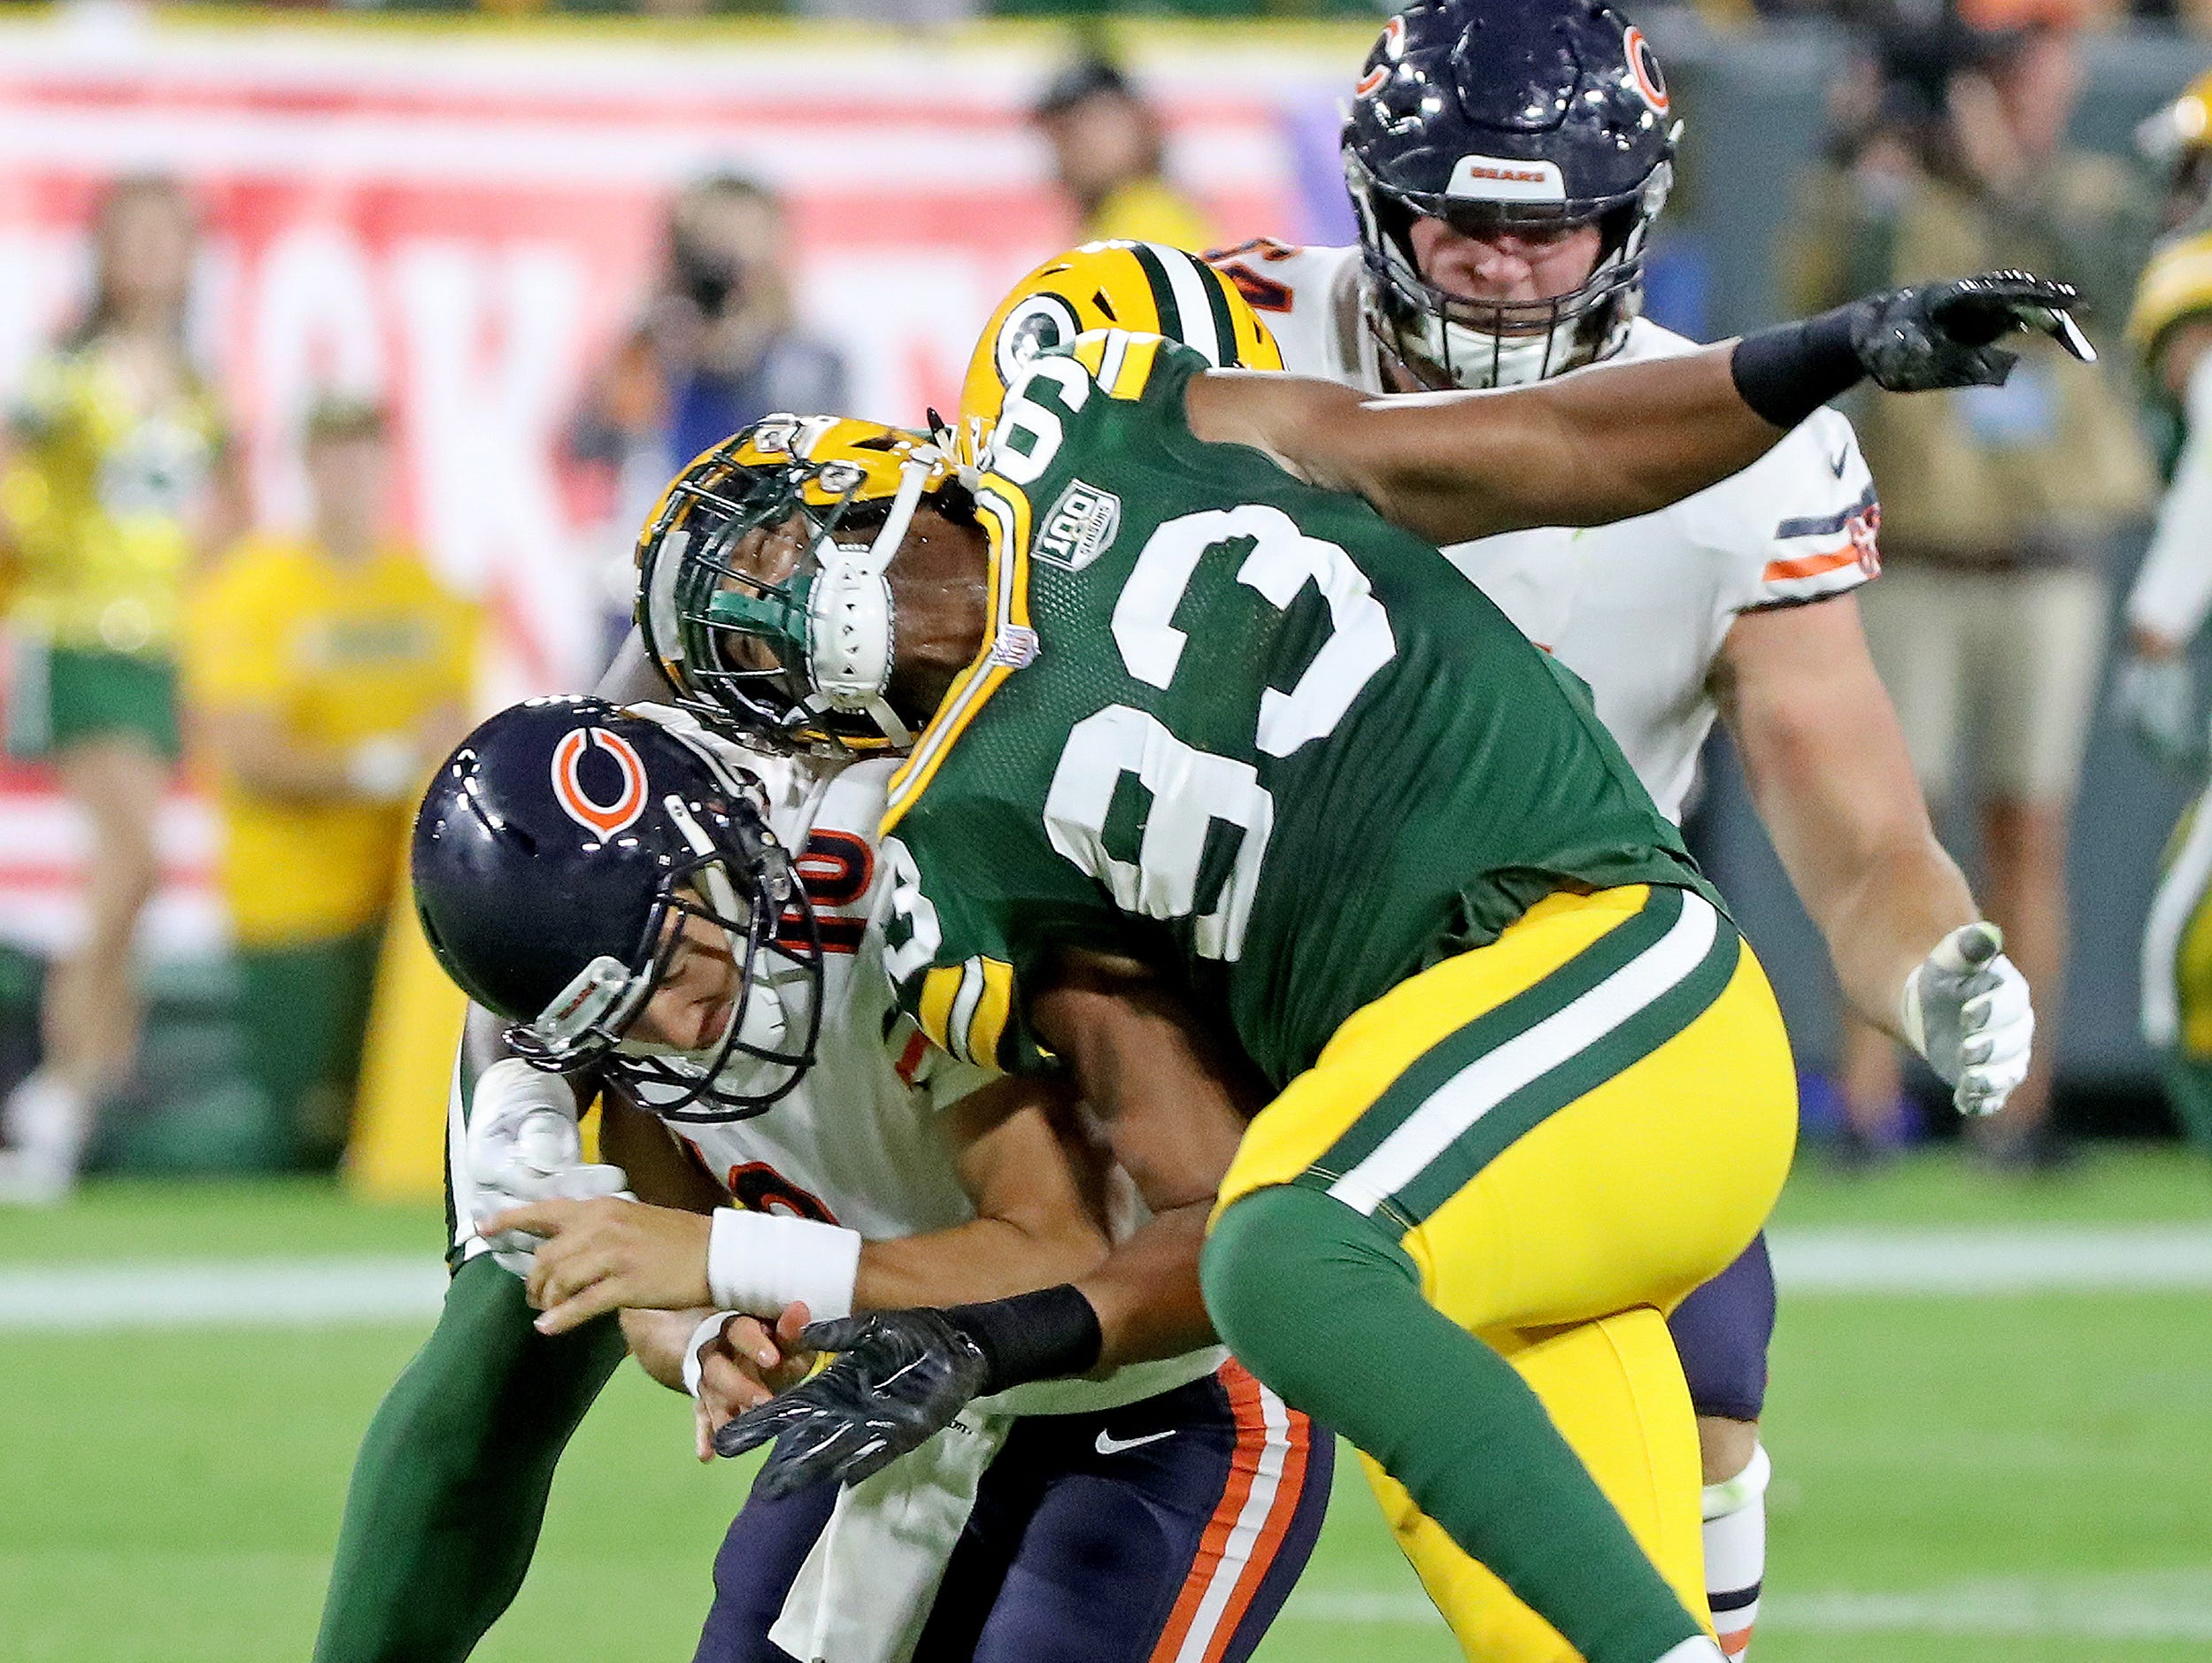 Green Bay Packers linebacker Reggie Gilbert (93) hits quarterback Mitchell Trubisky (10) against the Chicago Bears Sunday, September 9, 2018 at Lambeau Field in Green Bay, Wis. Jim Matthews/USA TODAY NETWORK-Wisconsin